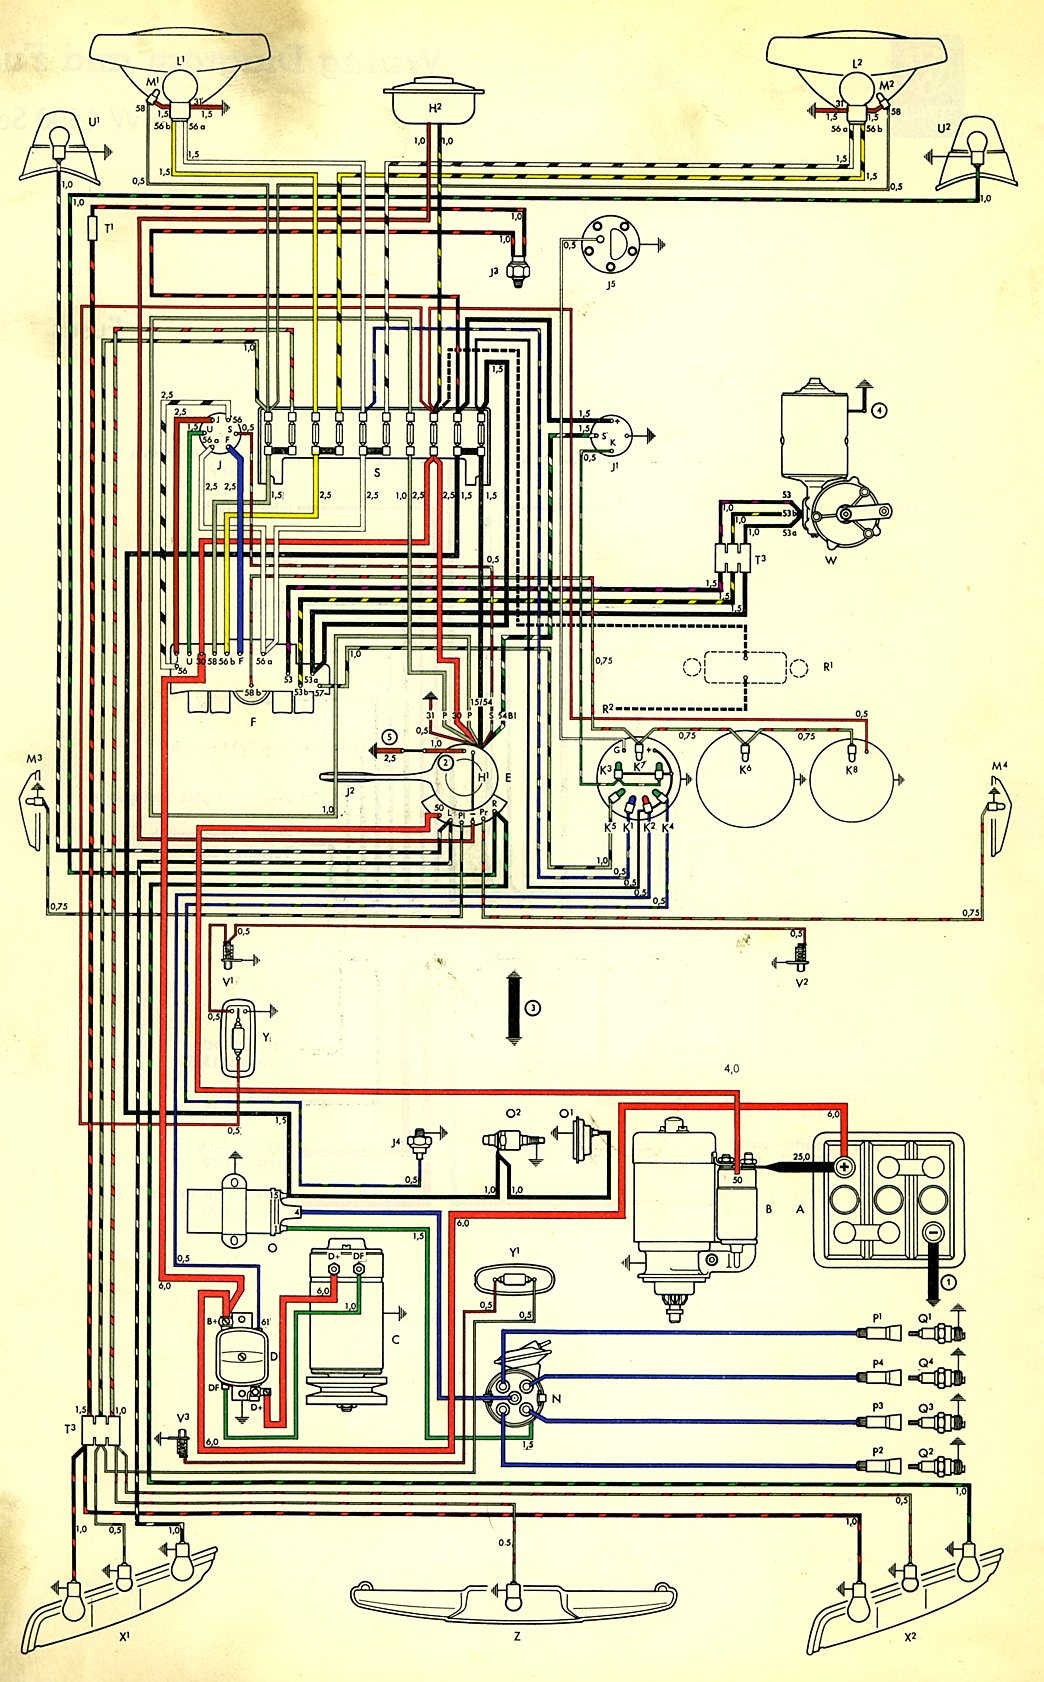 hight resolution of 1972 vw ignition system wiring diagram free download wiring diagram images gallery thesamba com type